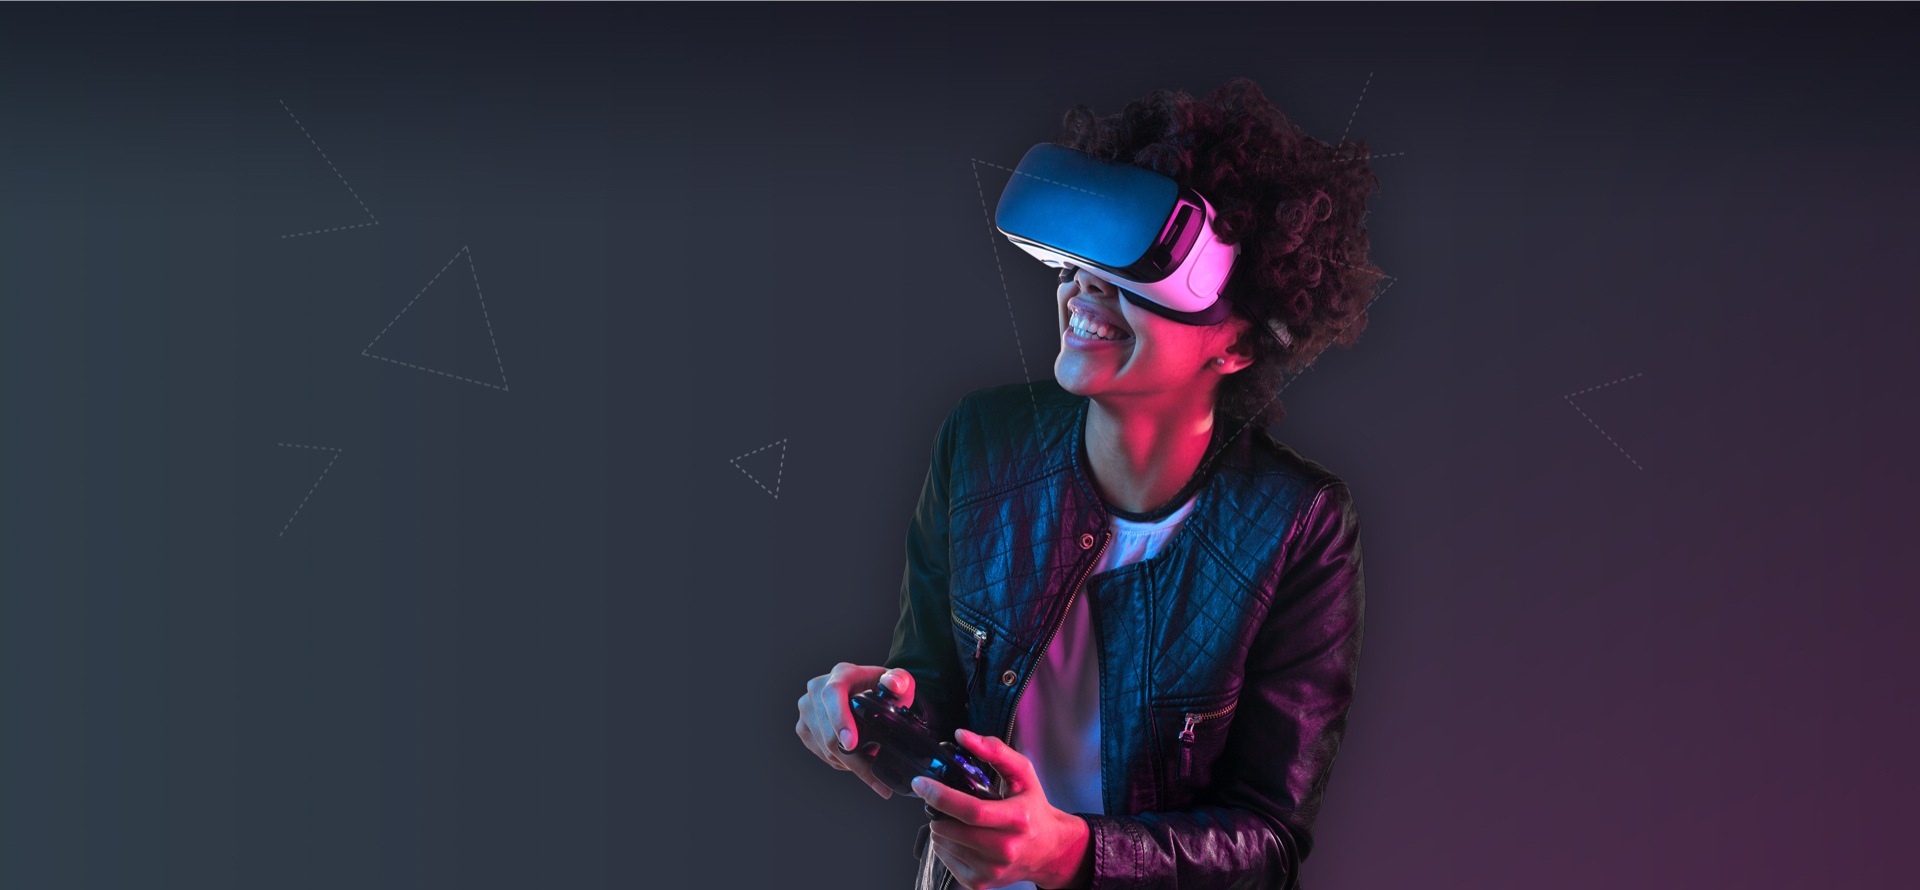 Image of a woman playing a game on with a VR headset